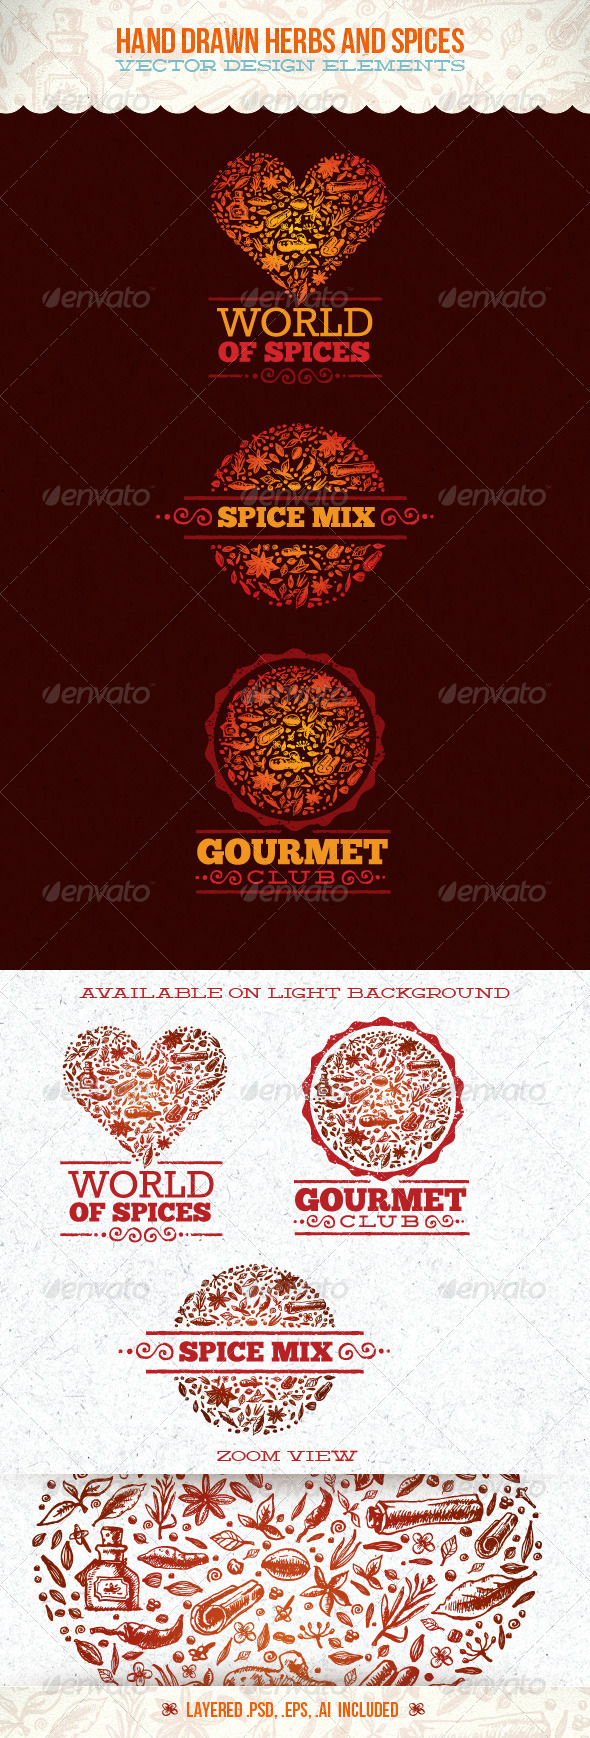 Spices and Herbs Vector Design Elements - Food Objects